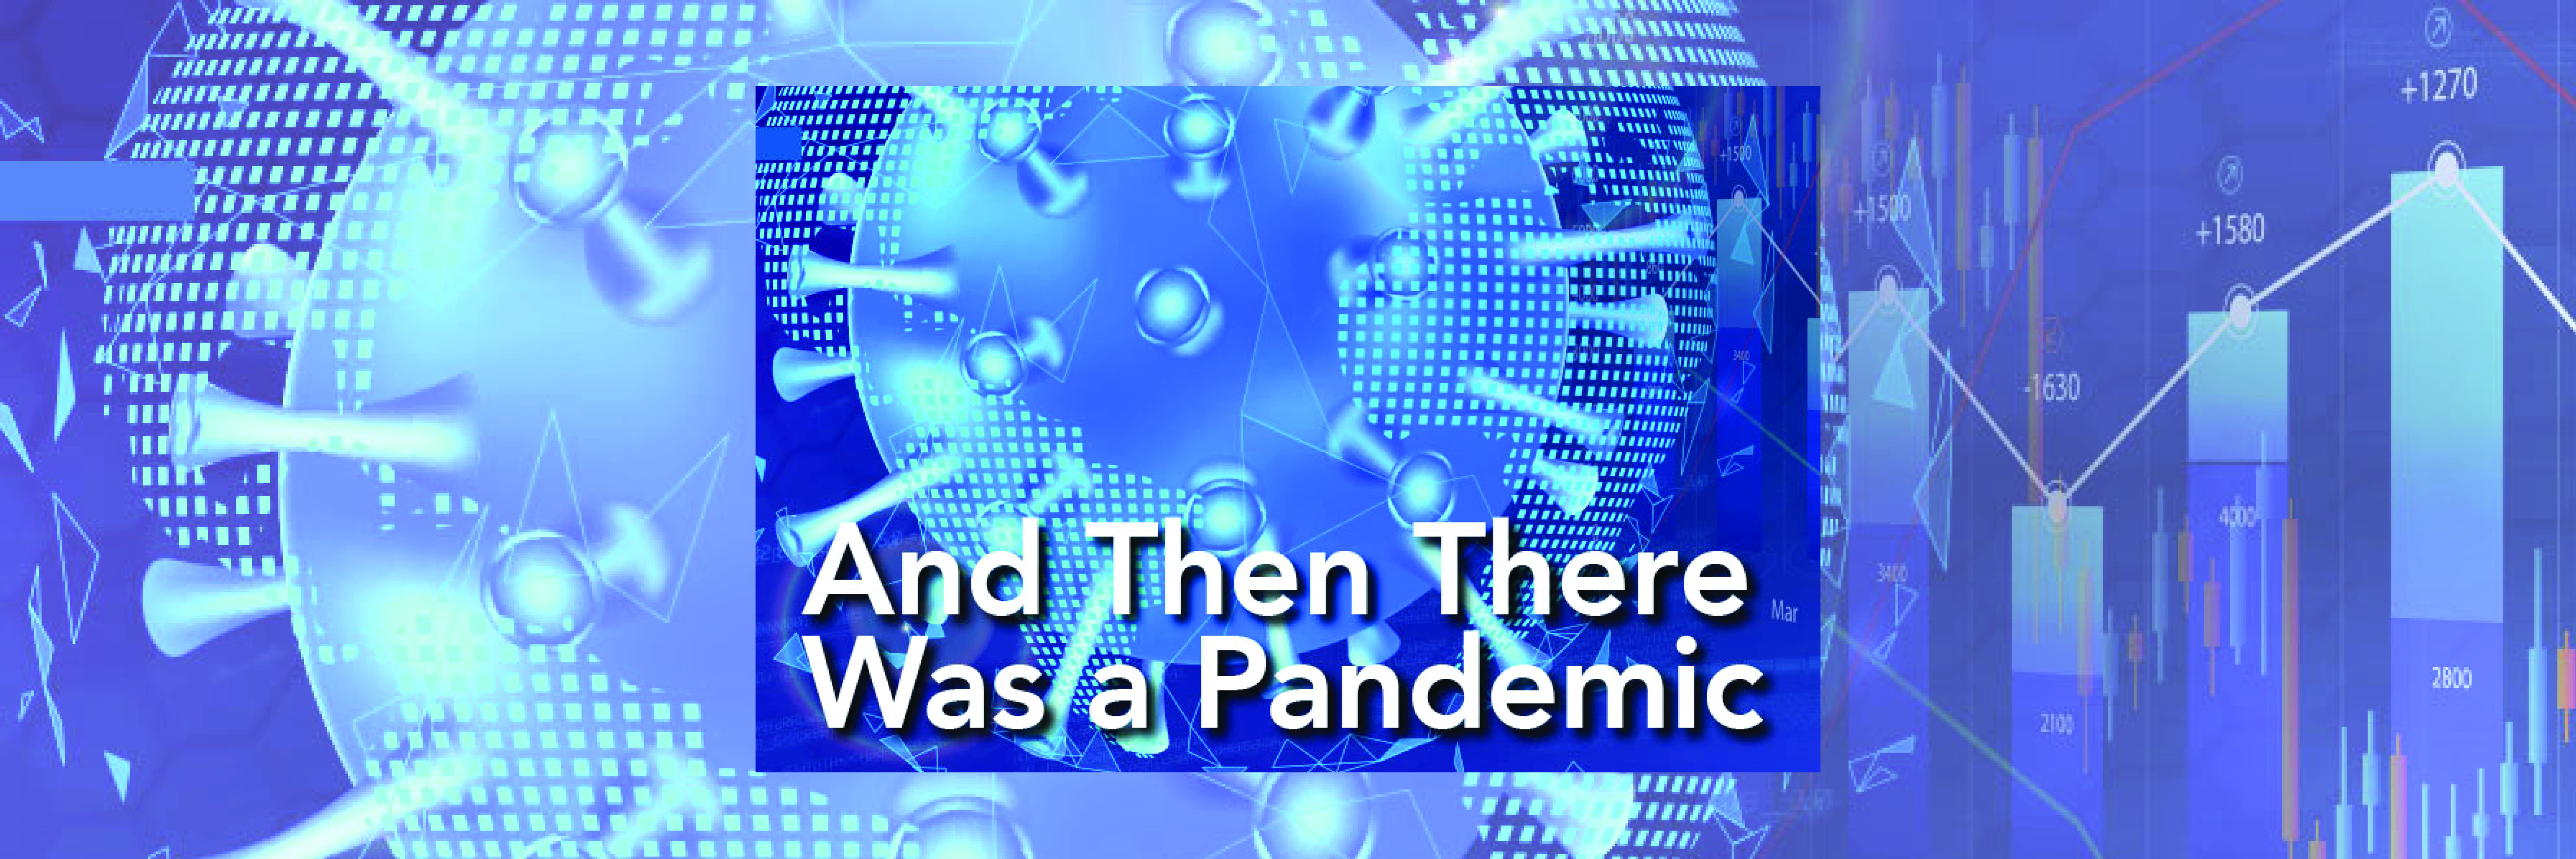 And Then There Was a Pandemic